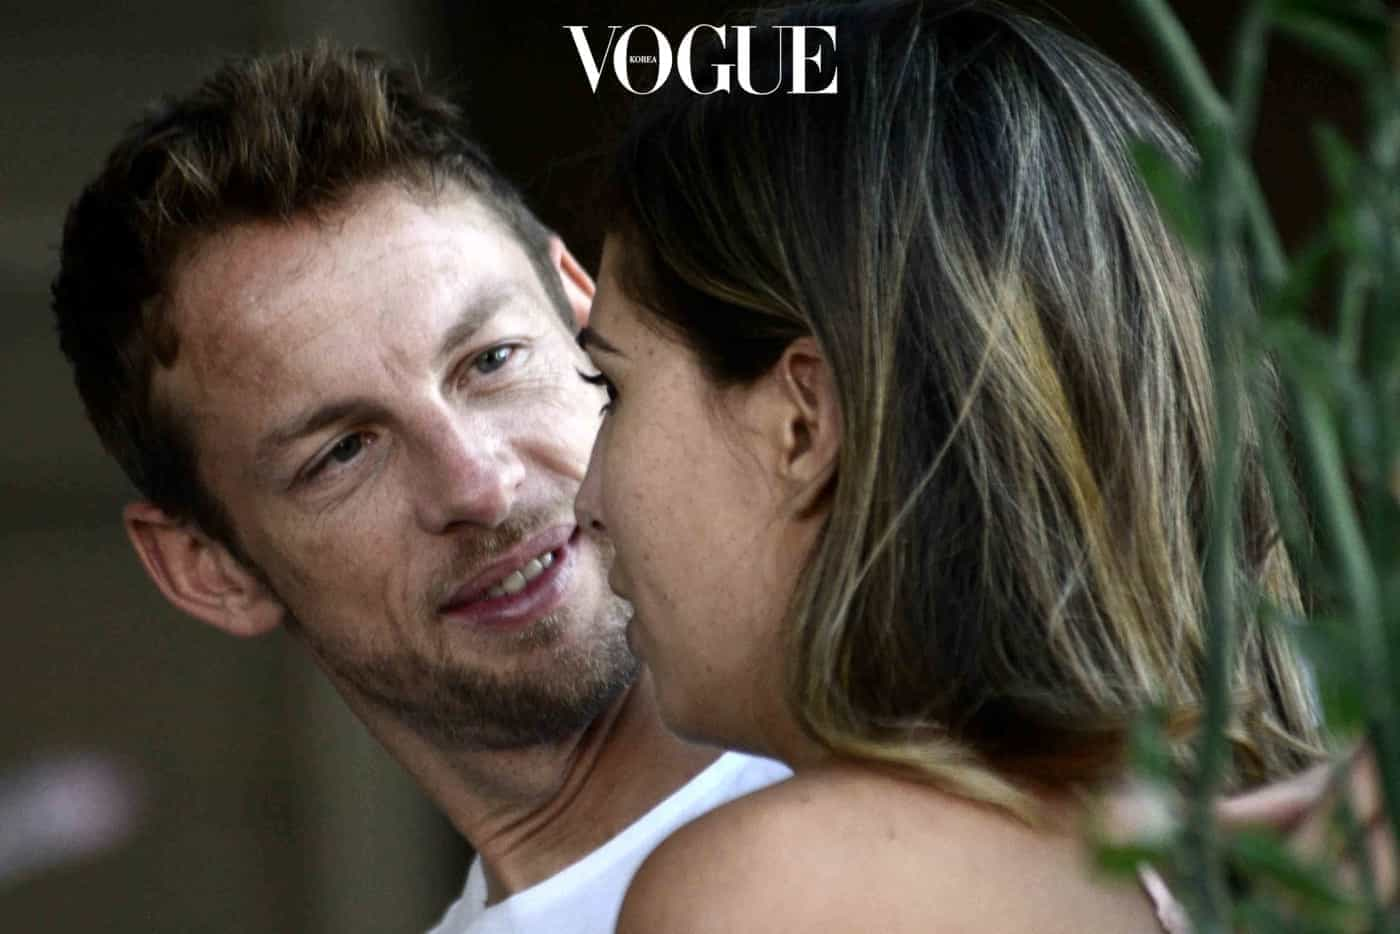 EXCLUSIVE: F1 Racing car driver Jenson Button gets cozy with his girlfriend Brittny Ward as they having lunch along Sunset Boulevard in West Hollywood, Ca  Pictured: Jenson Button and Brittny Ward Ref: SPL1372270  111016   EXCLUSIVE Picture by: GoldenEye / London Entertainment  Splash News and Pictures Los Angeles:	310-821-2666 New York:	212-619-2666 London:	870-934-2666 photodesk@splashnews.com